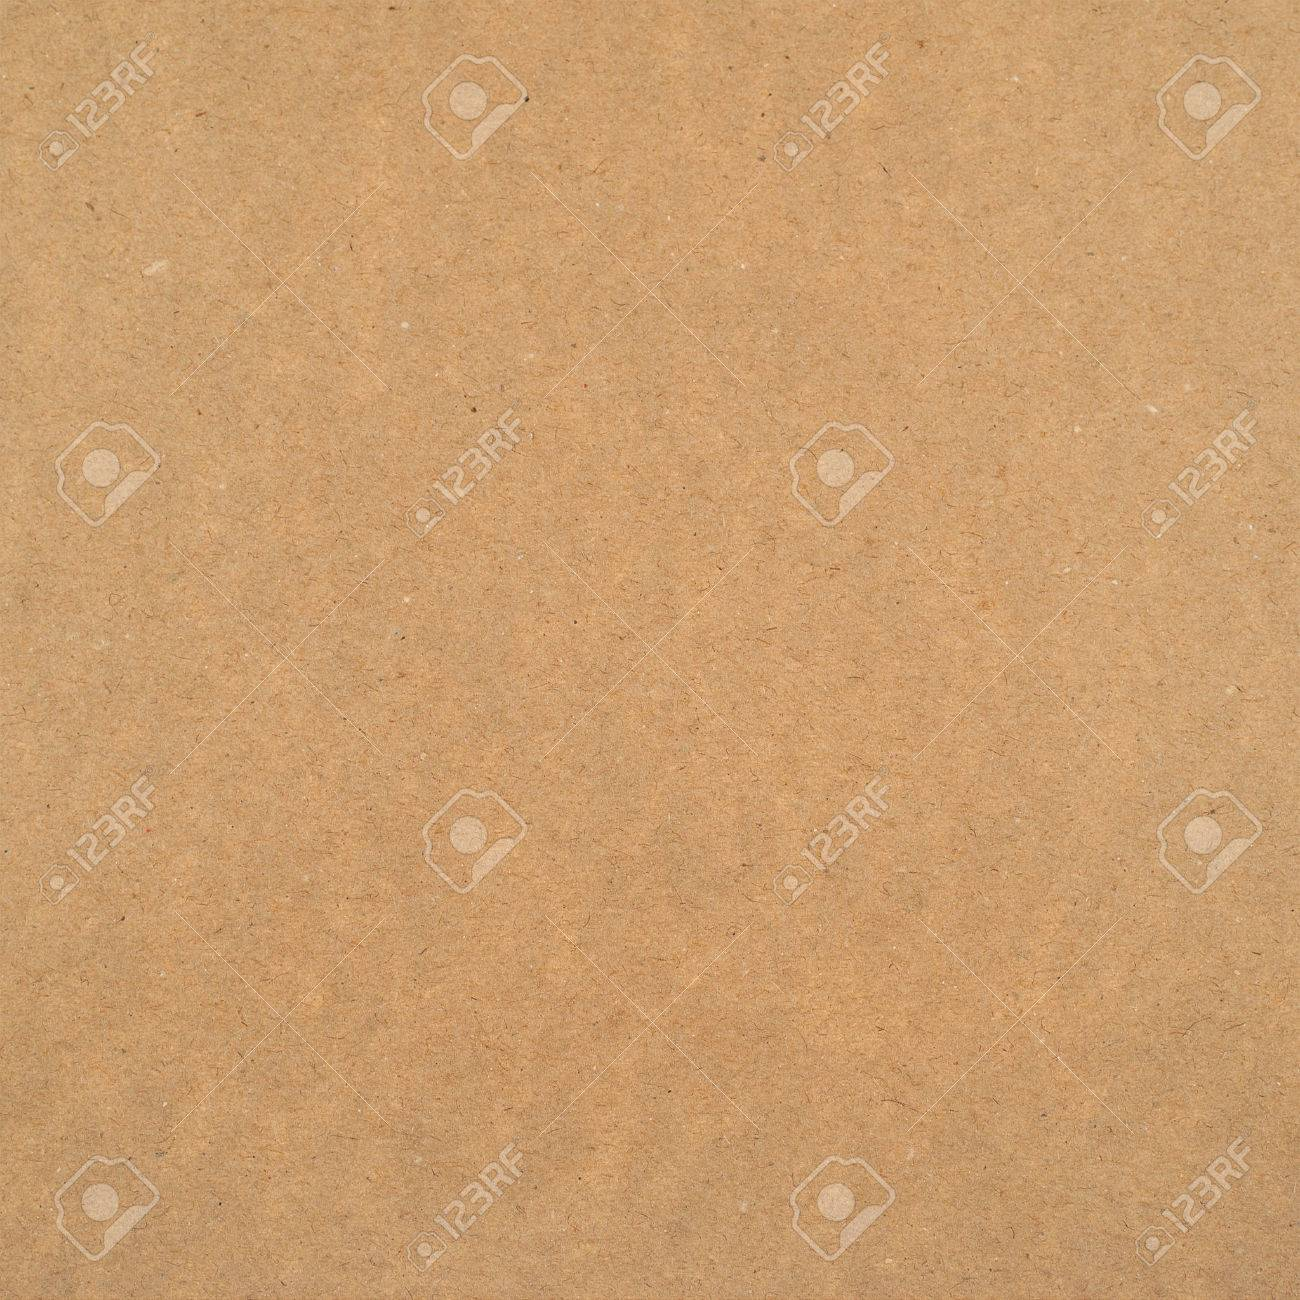 cheap brown packaging paper texture background stock photo cheap brown packaging paper texture background stock photo 26231538